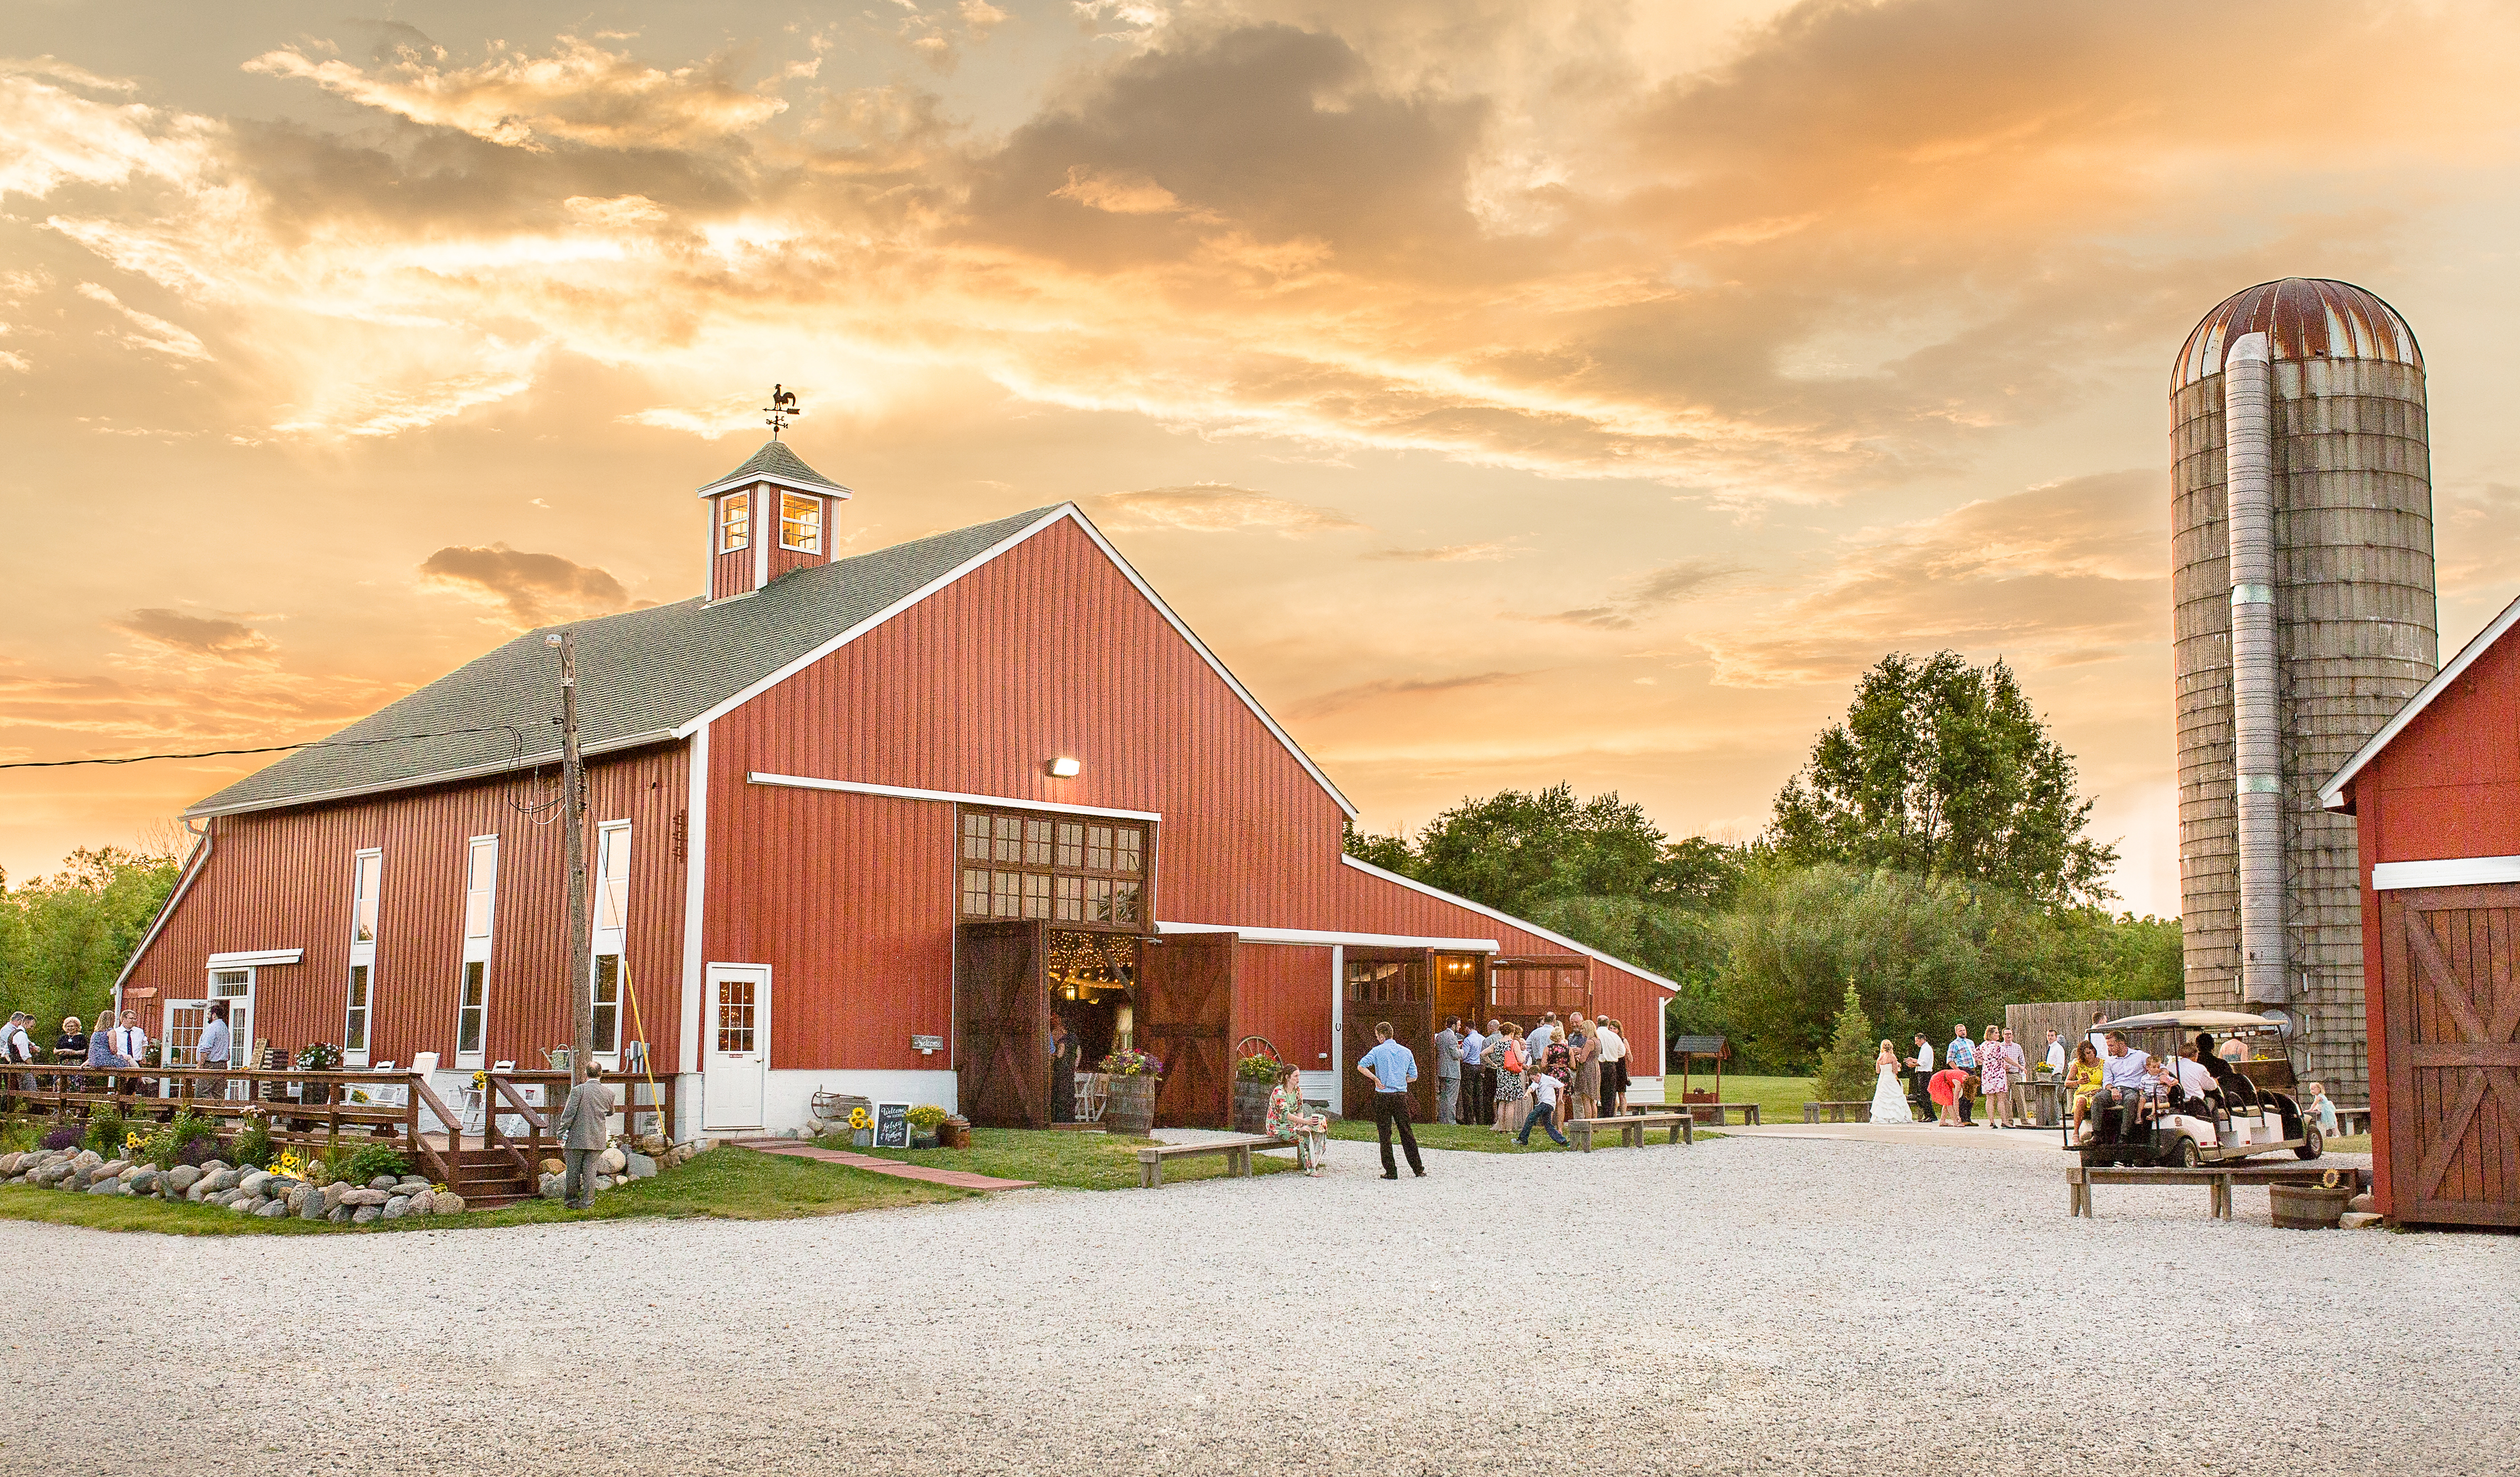 SE view of Avon Wedding barn at dusk during a reception